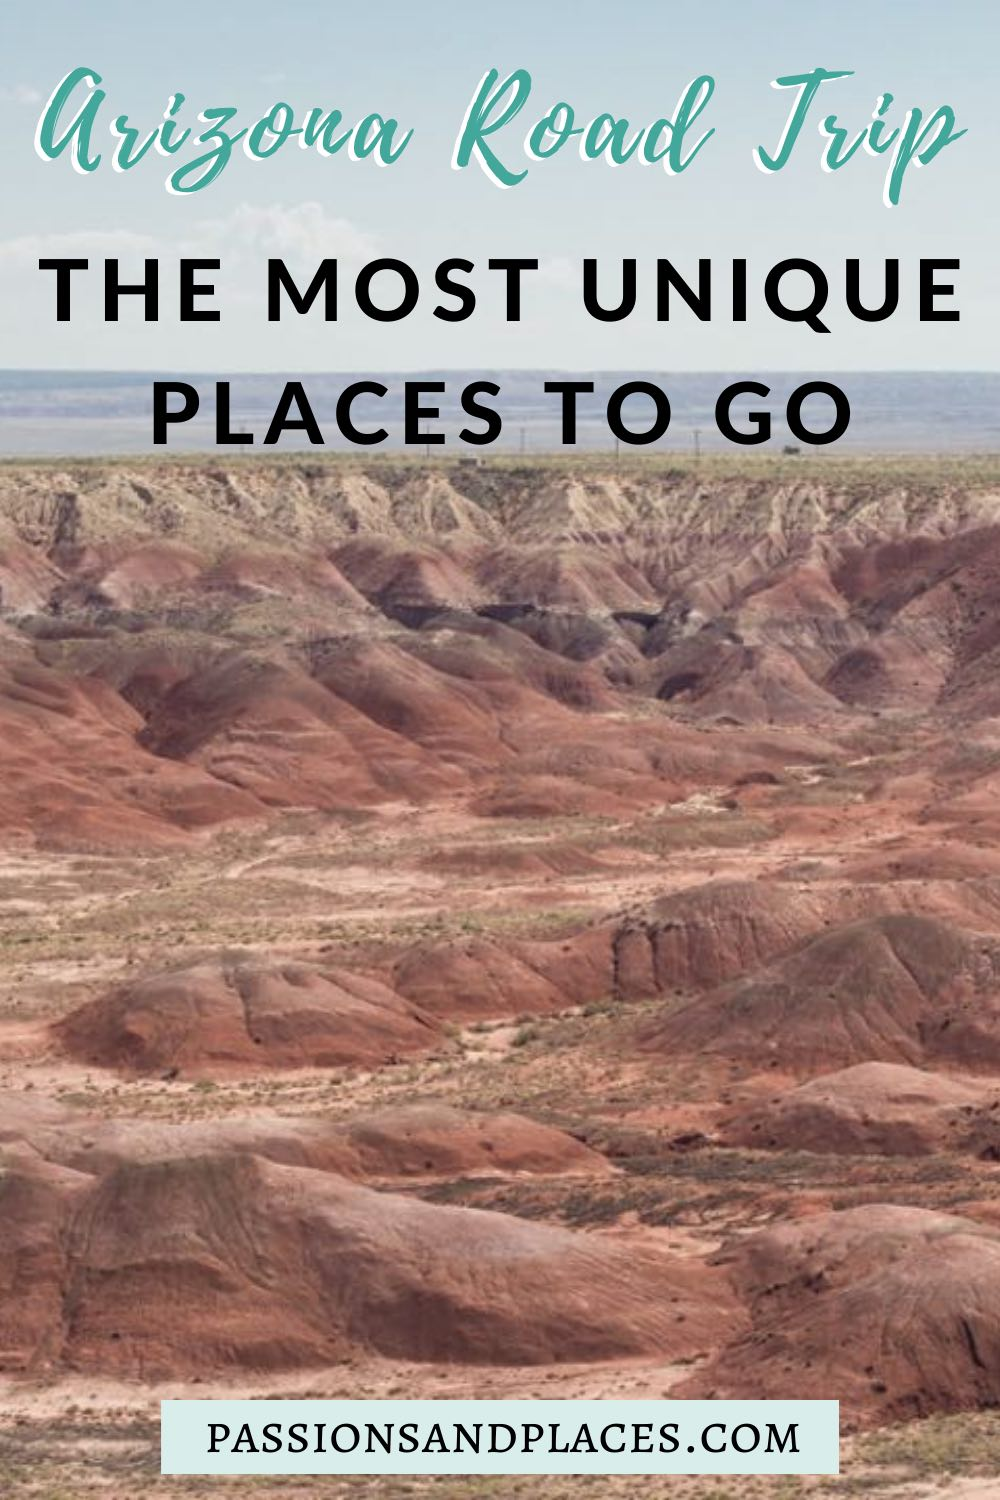 Are you thinking about taking an Arizona trip? This state is perfect for road trips and jam-packed with places to see. If you want to get off the beaten path, check out this list of unique places to go in Arizona, including Jerome, Kingman, Petrified Forest National Park, and more! #az #arizonatrip #offthebeatenpath